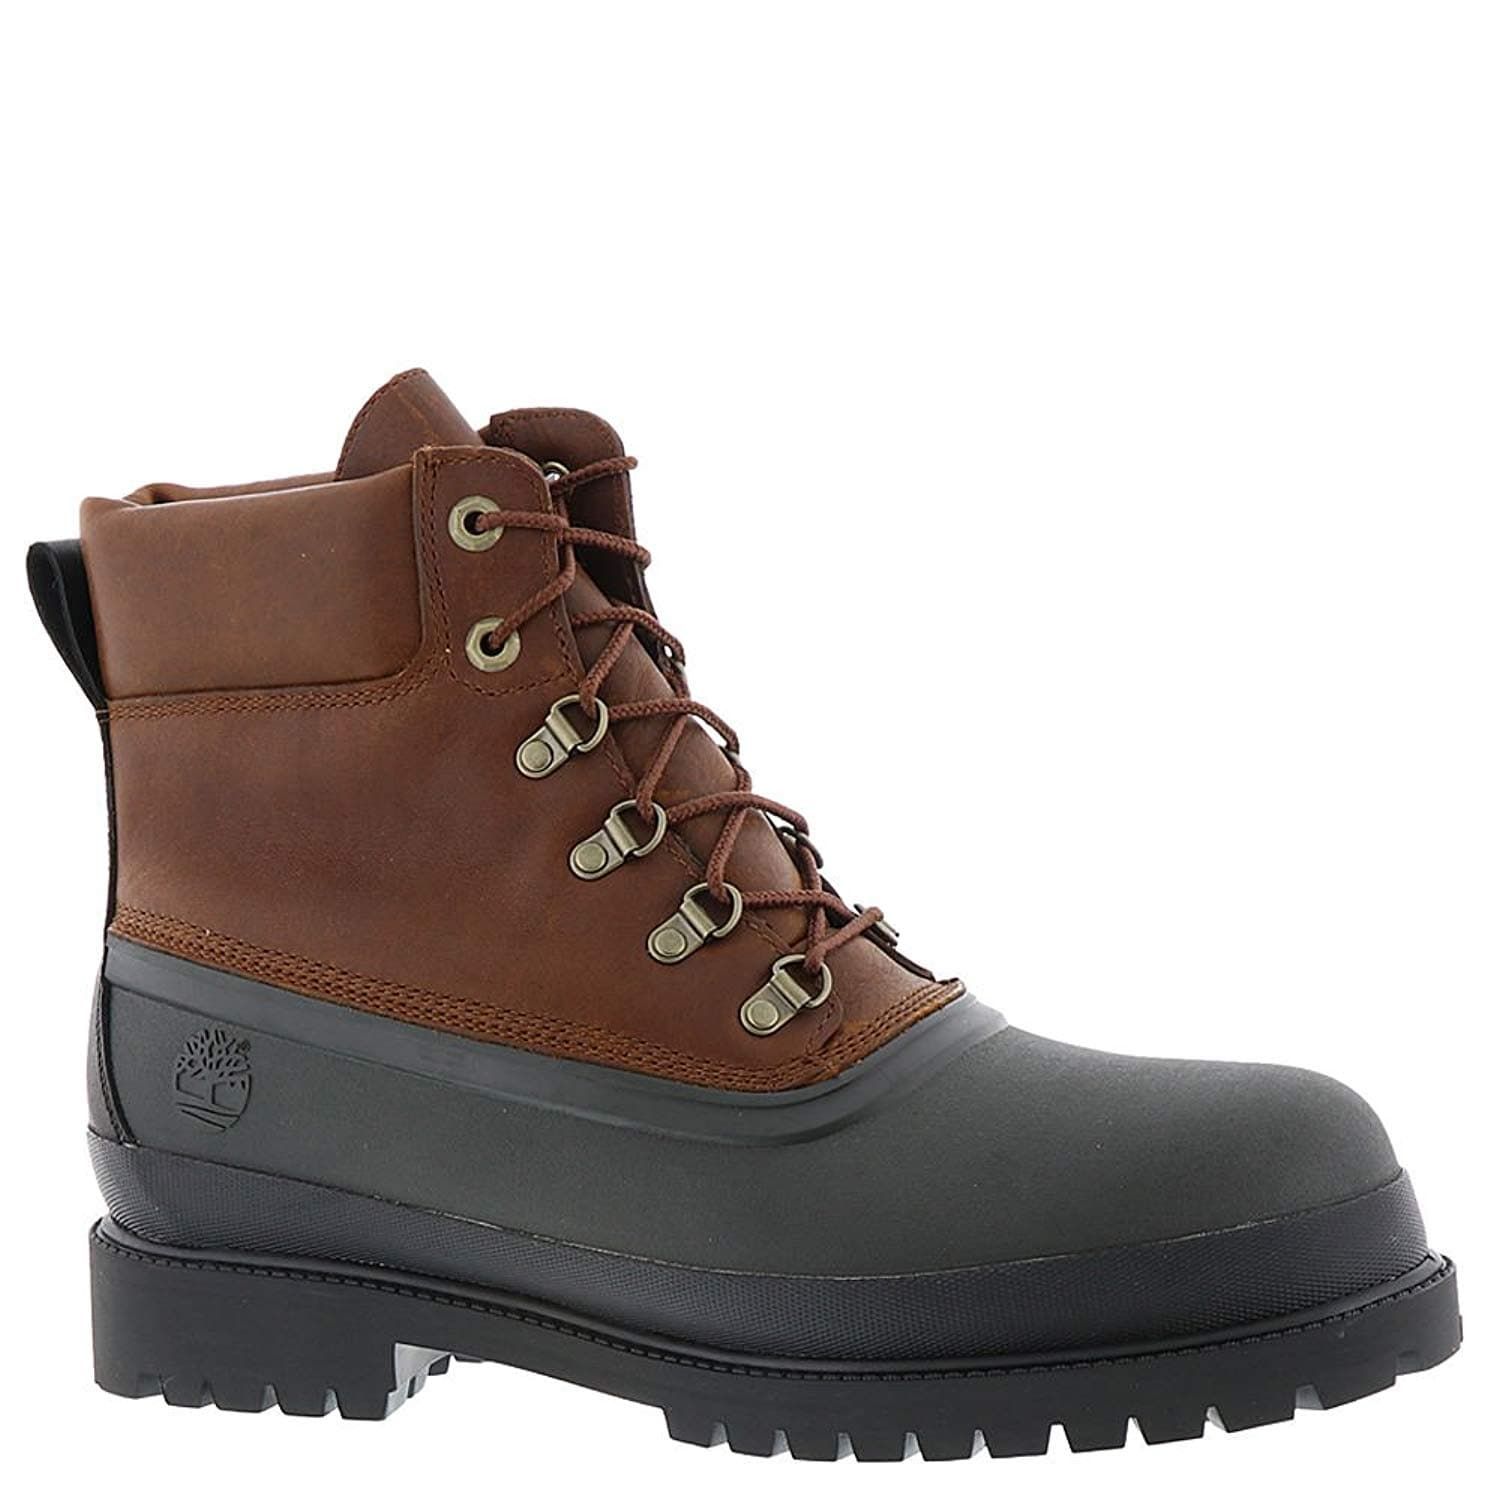 finest selection 75d0c 24026 Shop Timberland Icon Rubber Toe Winter Boot - Men s - Free Shipping Today -  Overstock - 23534527 - Brown Full-grain - 11.5